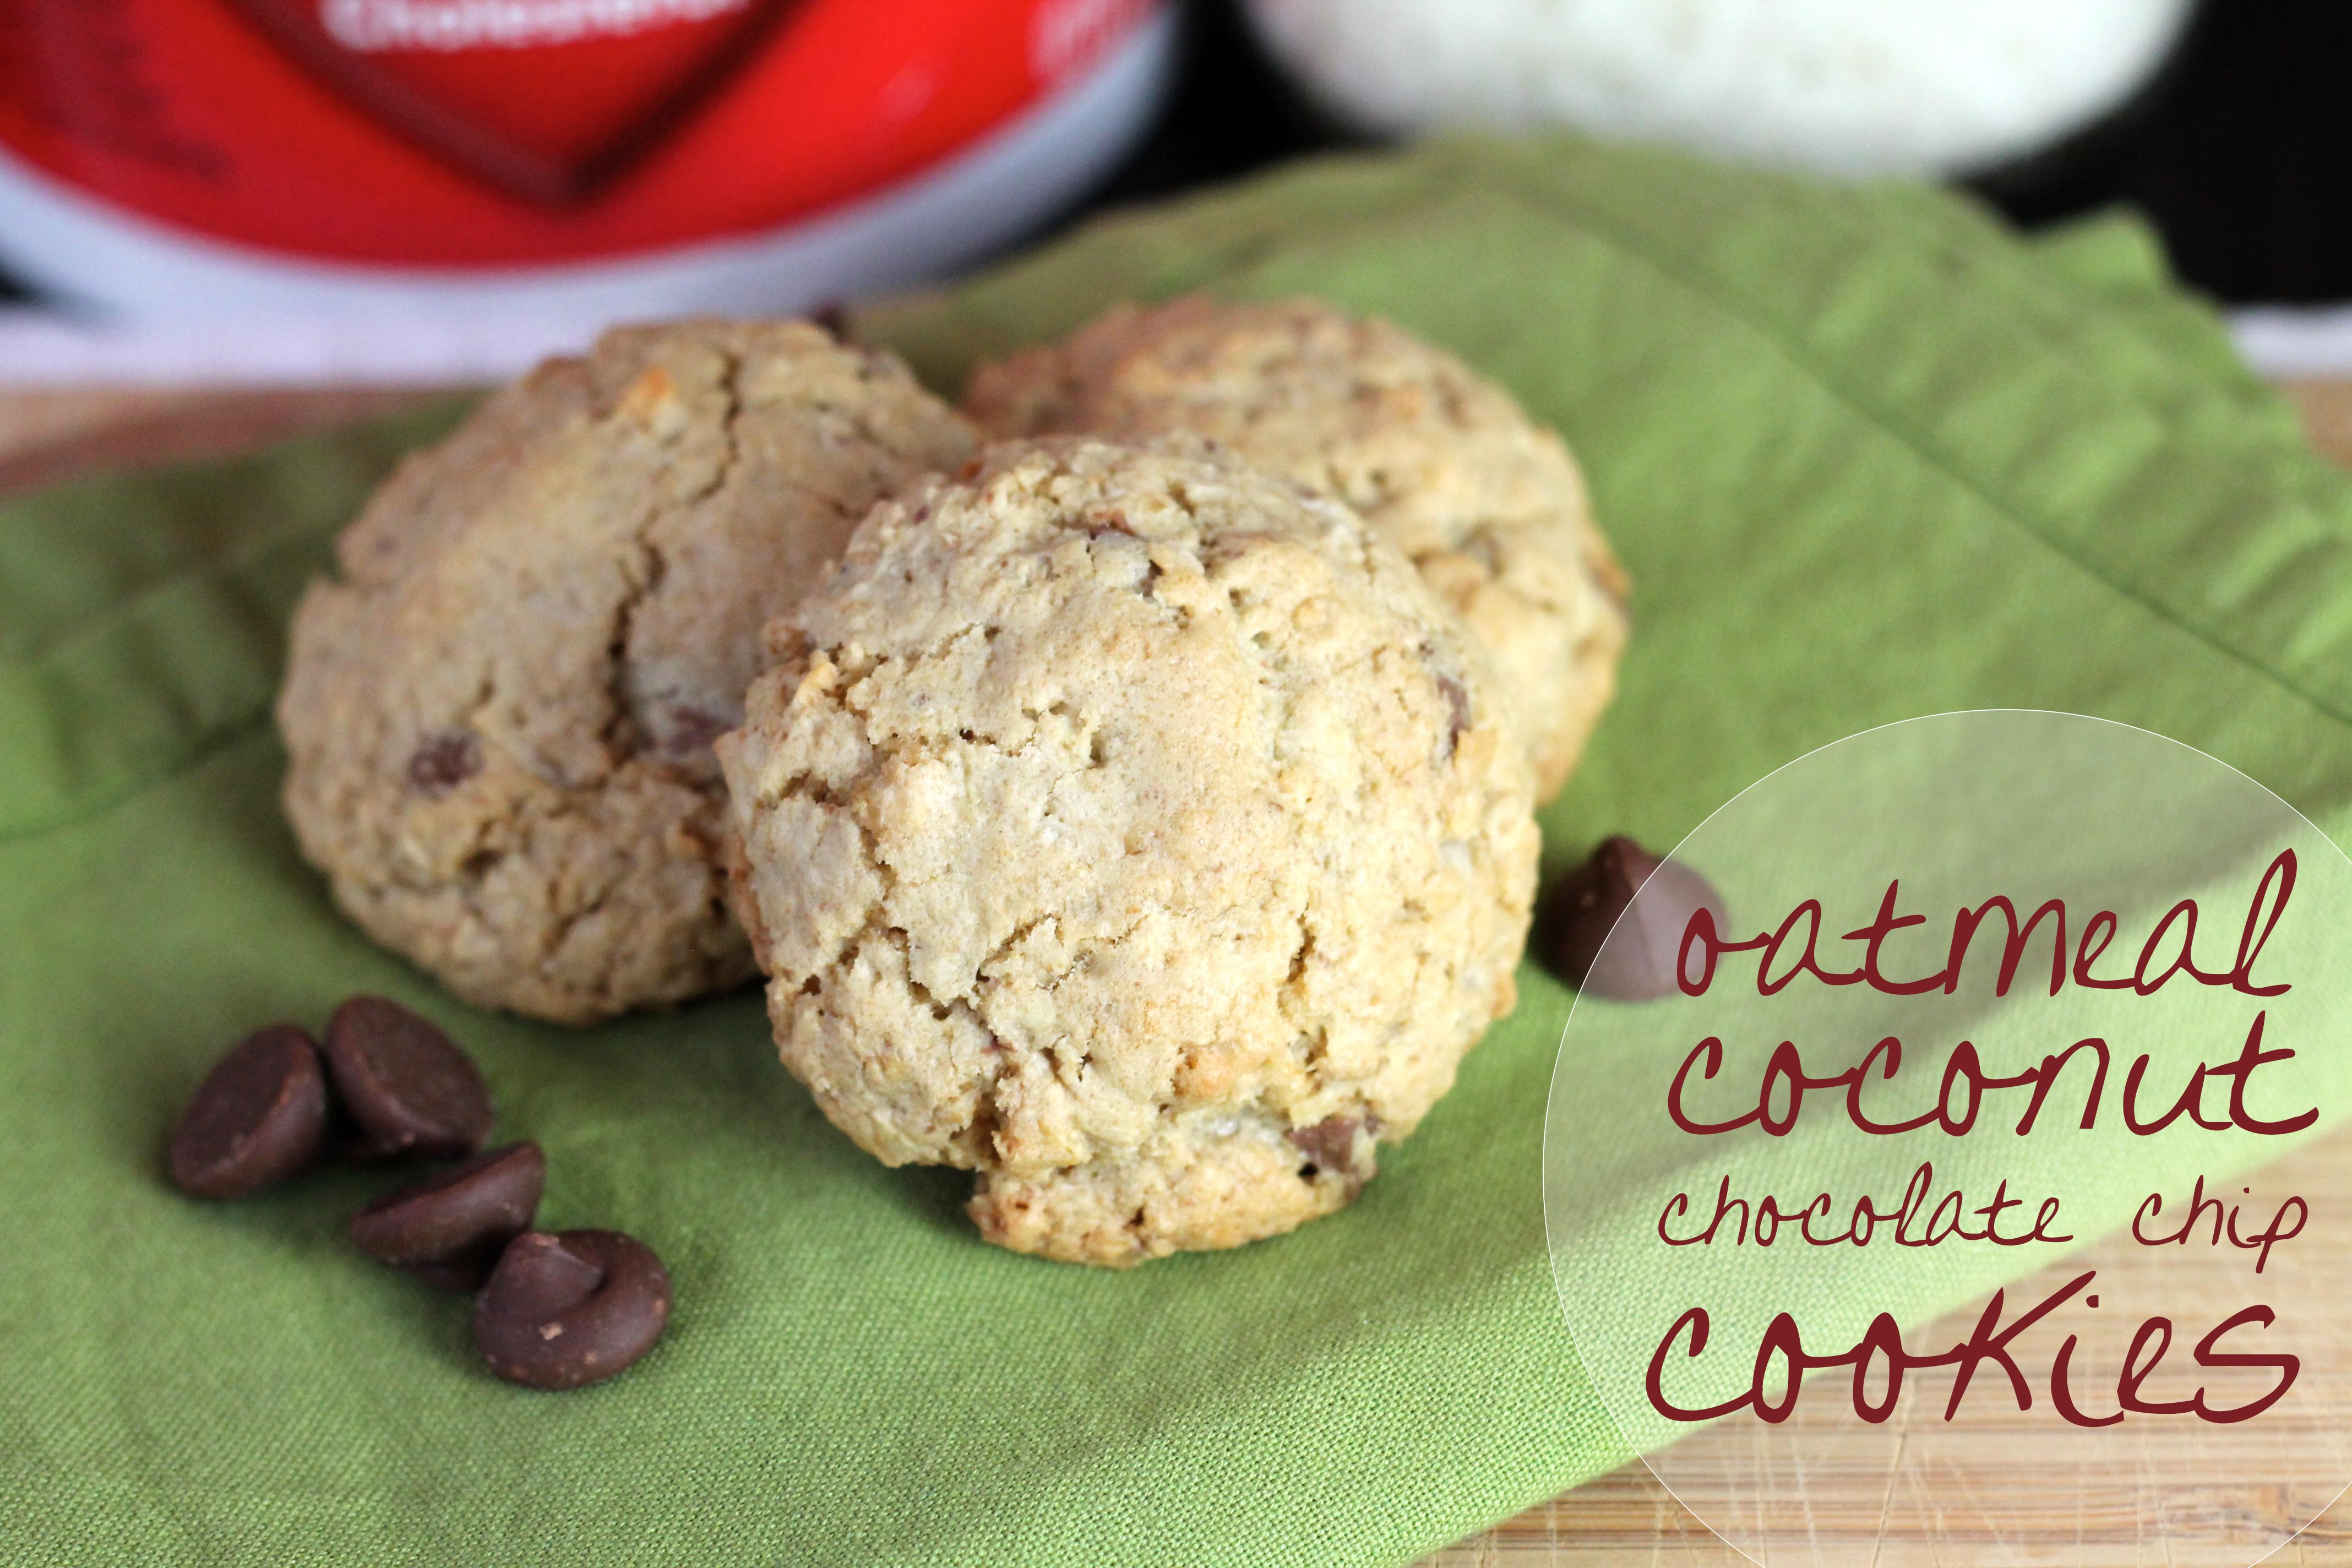 Oatmeal, Coconut and Chocolate Chip Cookies